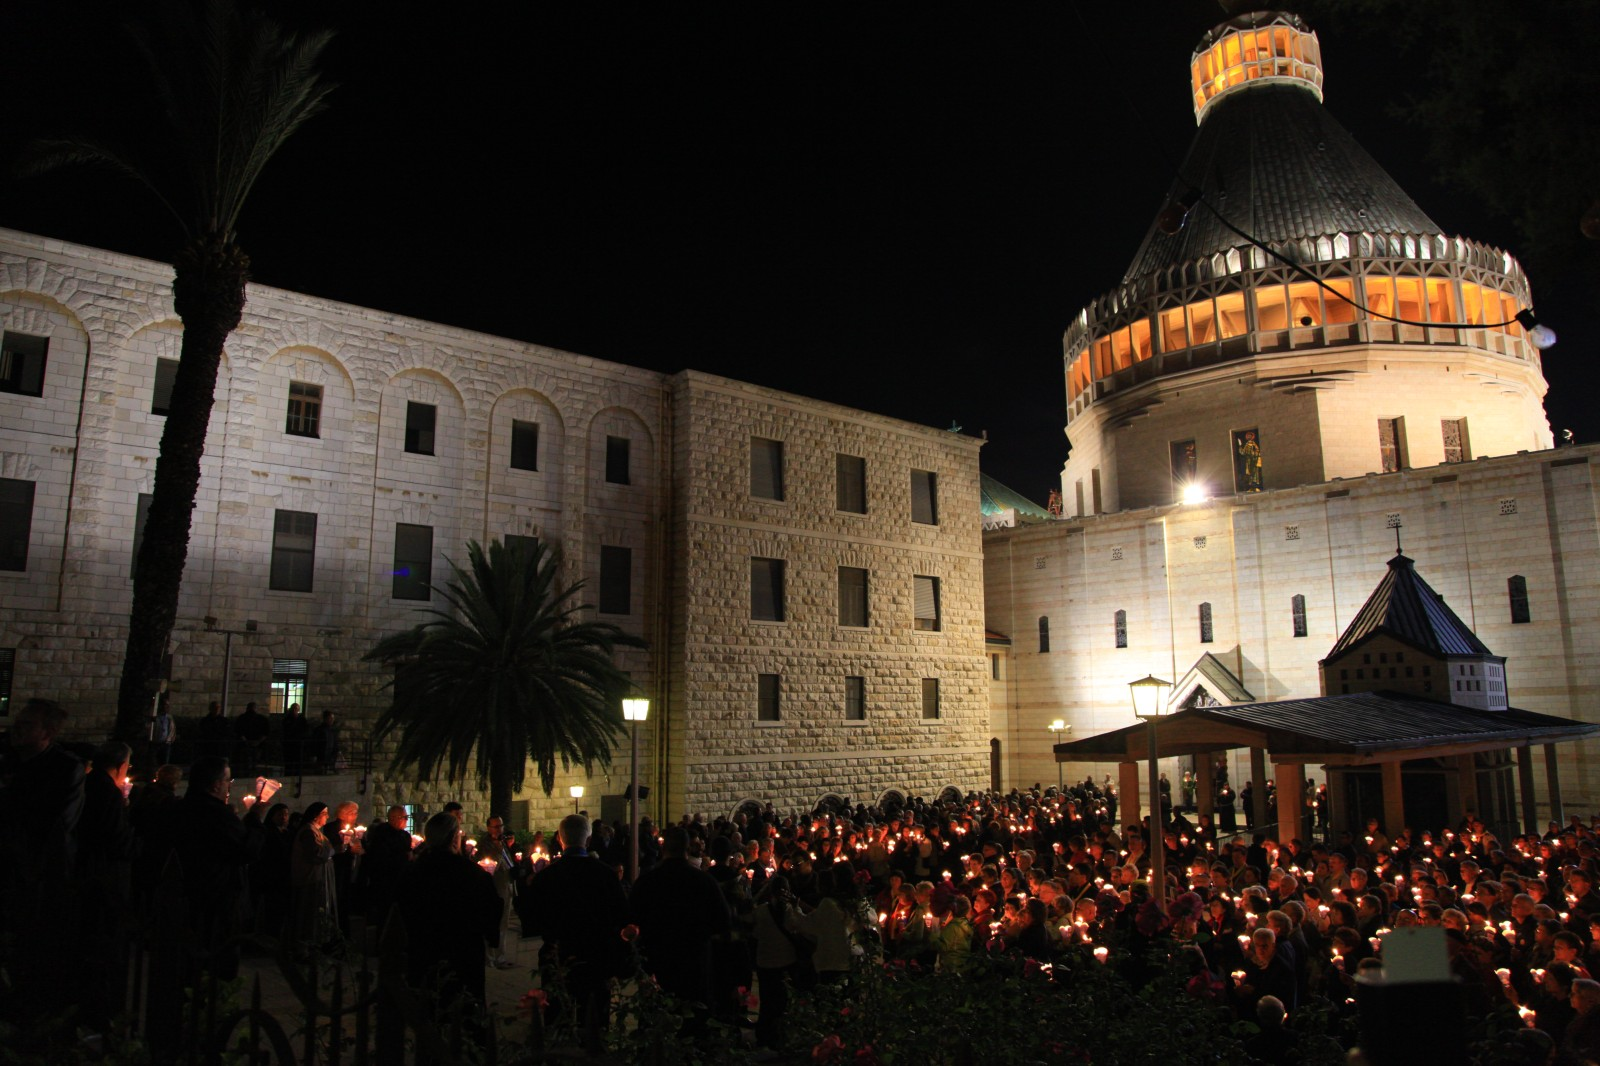 While Muslims are dancing like crazy celebrating Eid Al-Adha, Christians have their regular Saturday prayer in Basilica of the Annunciation